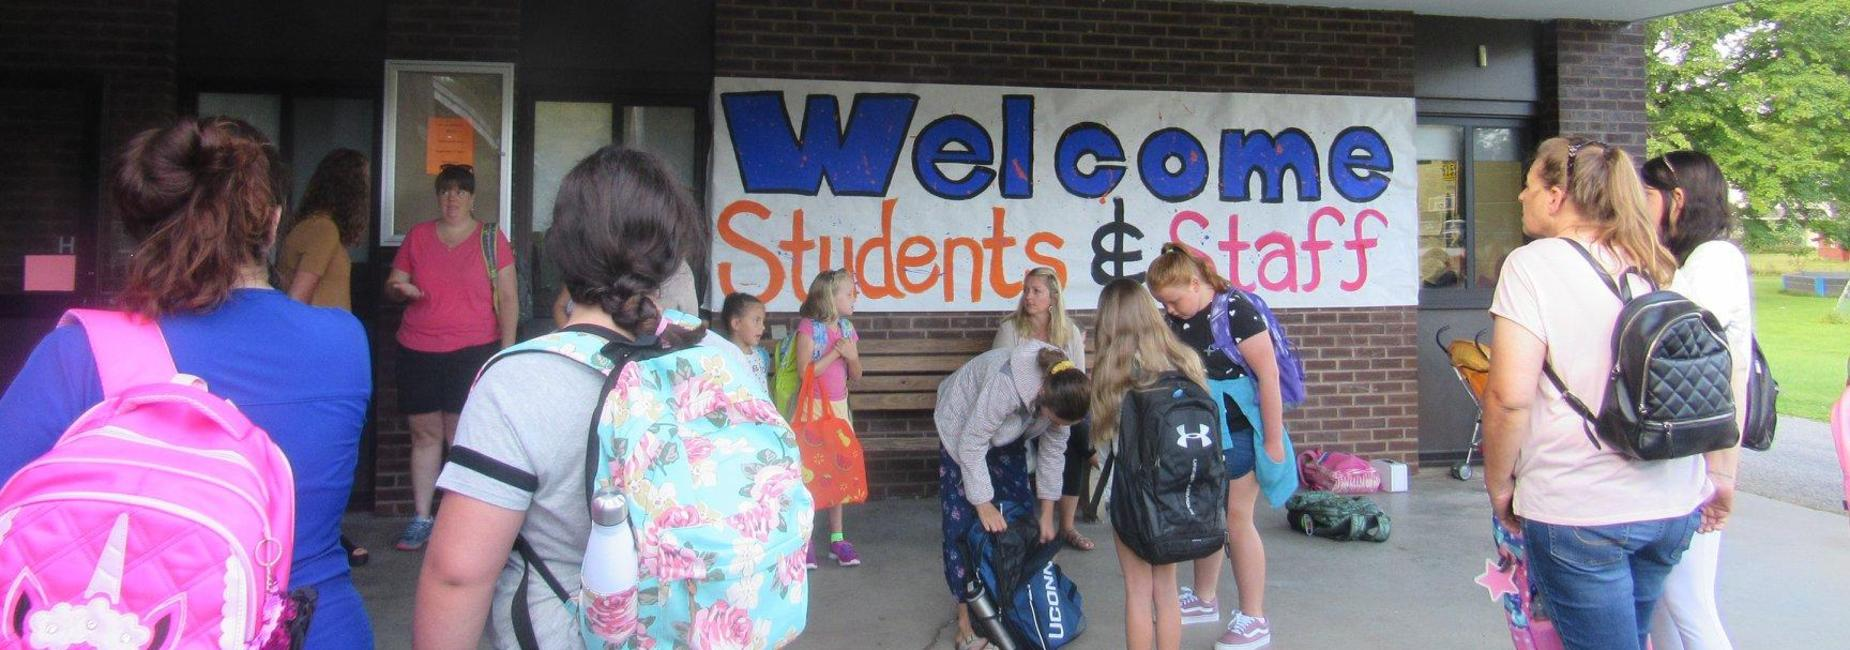 students walk into school; a sign that says WELCOME hangs in the background